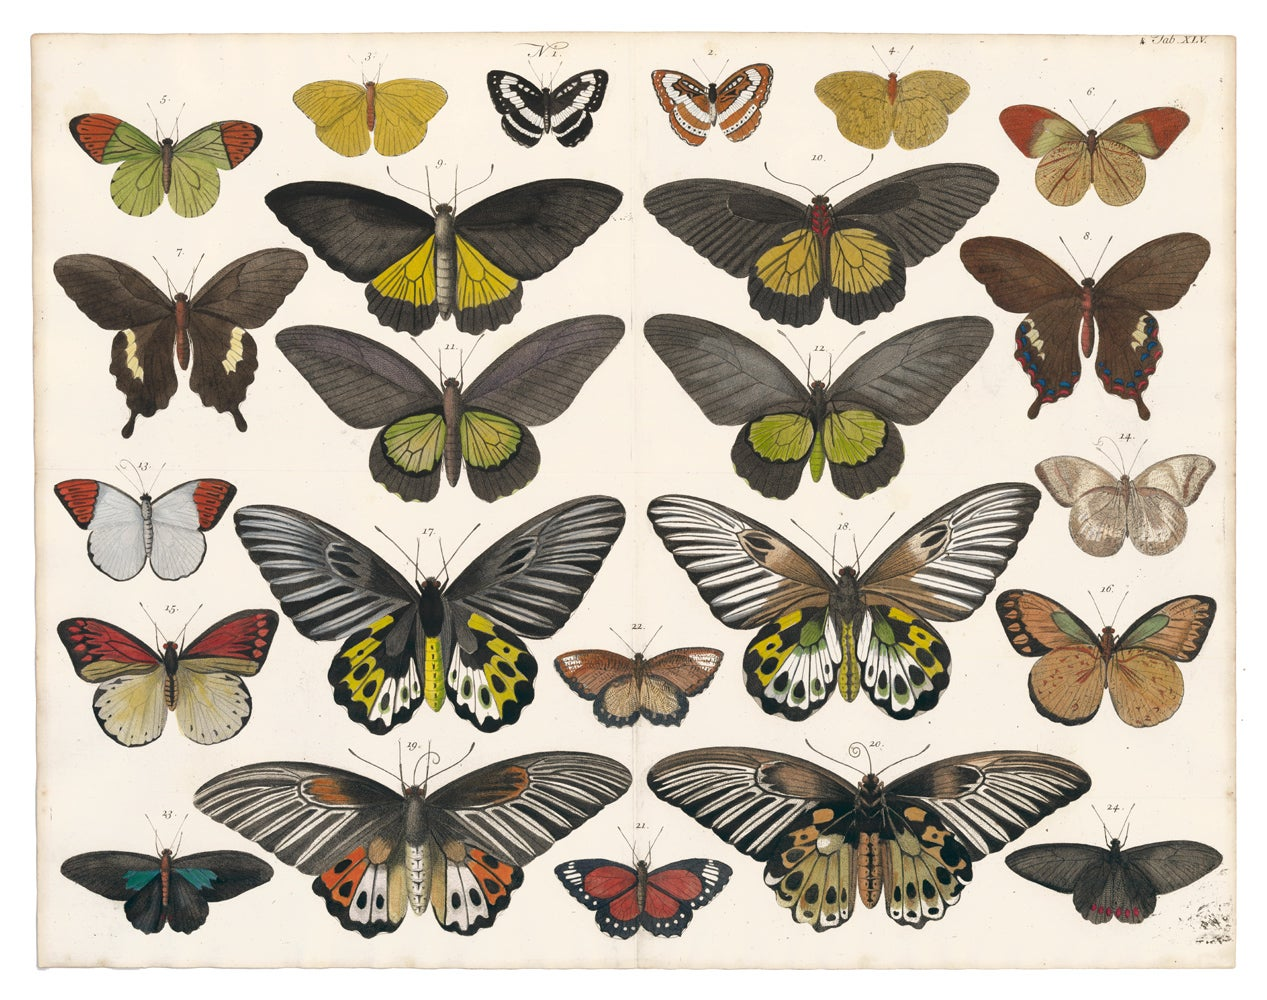 Engraving of Butterflies and Moths